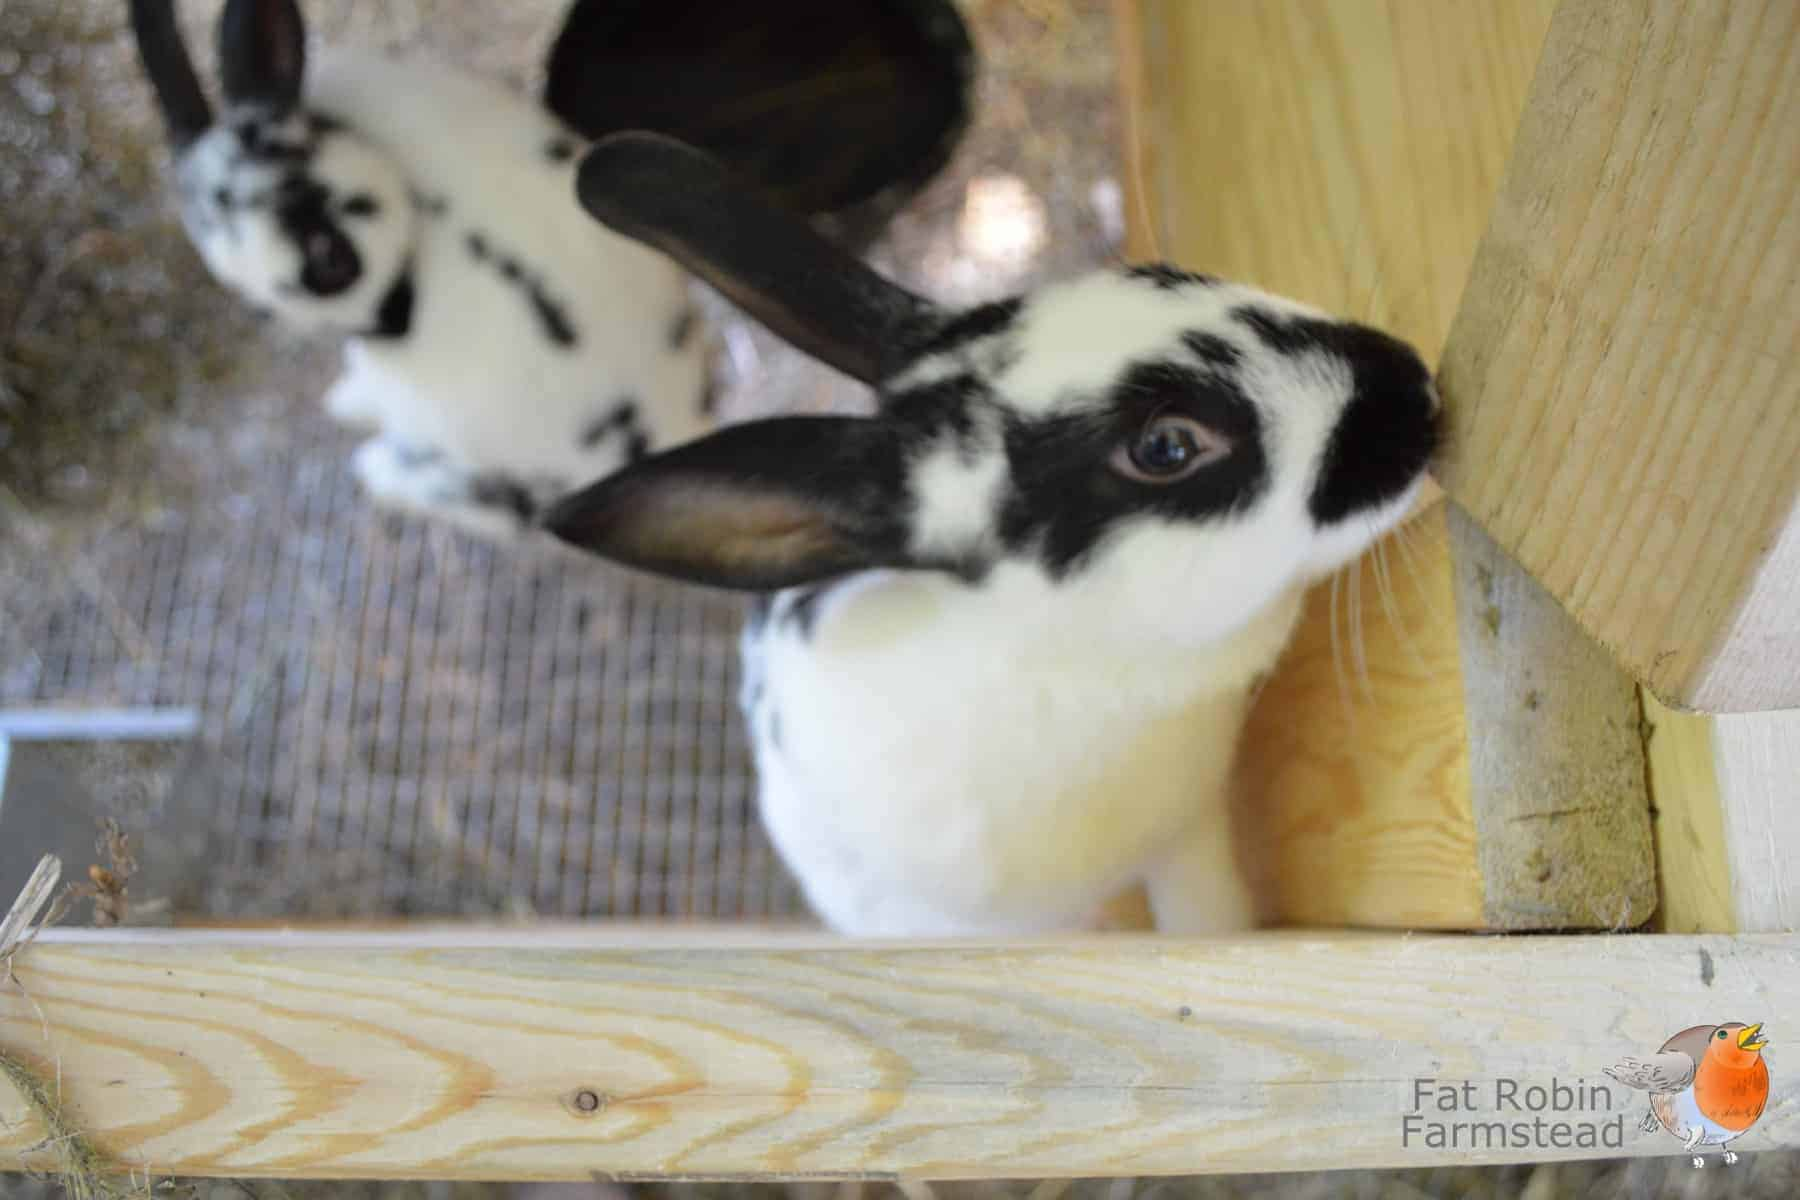 Rabbit Keeping another just for cuteness